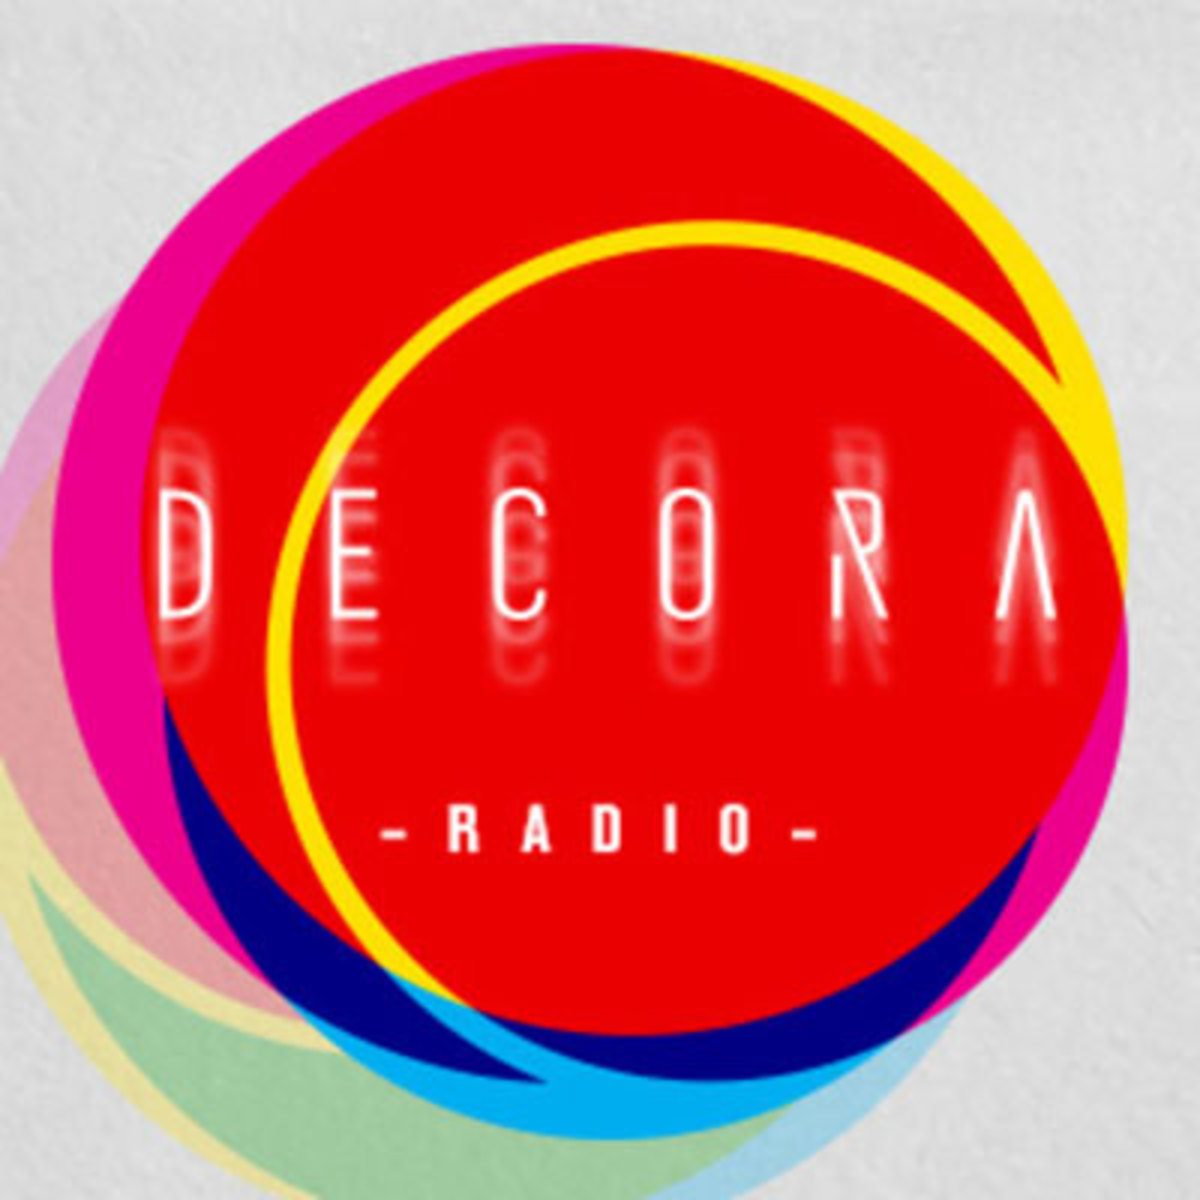 decora-radio.jpg